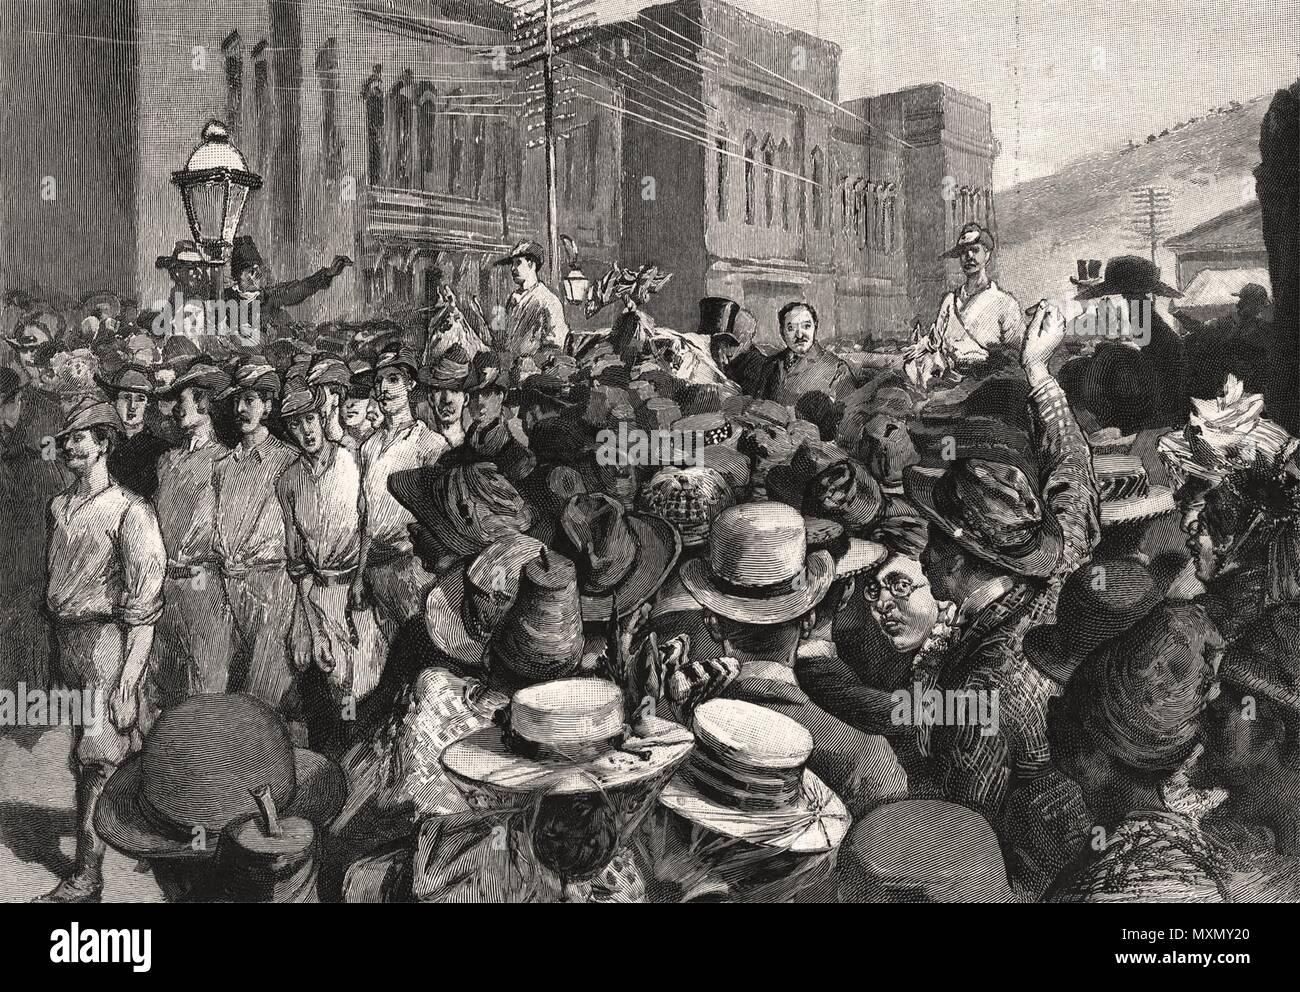 Cecil Rhodes leaving Cape Town railway station in a carriage. South Africa 1897. The Illustrated London News - Stock Image